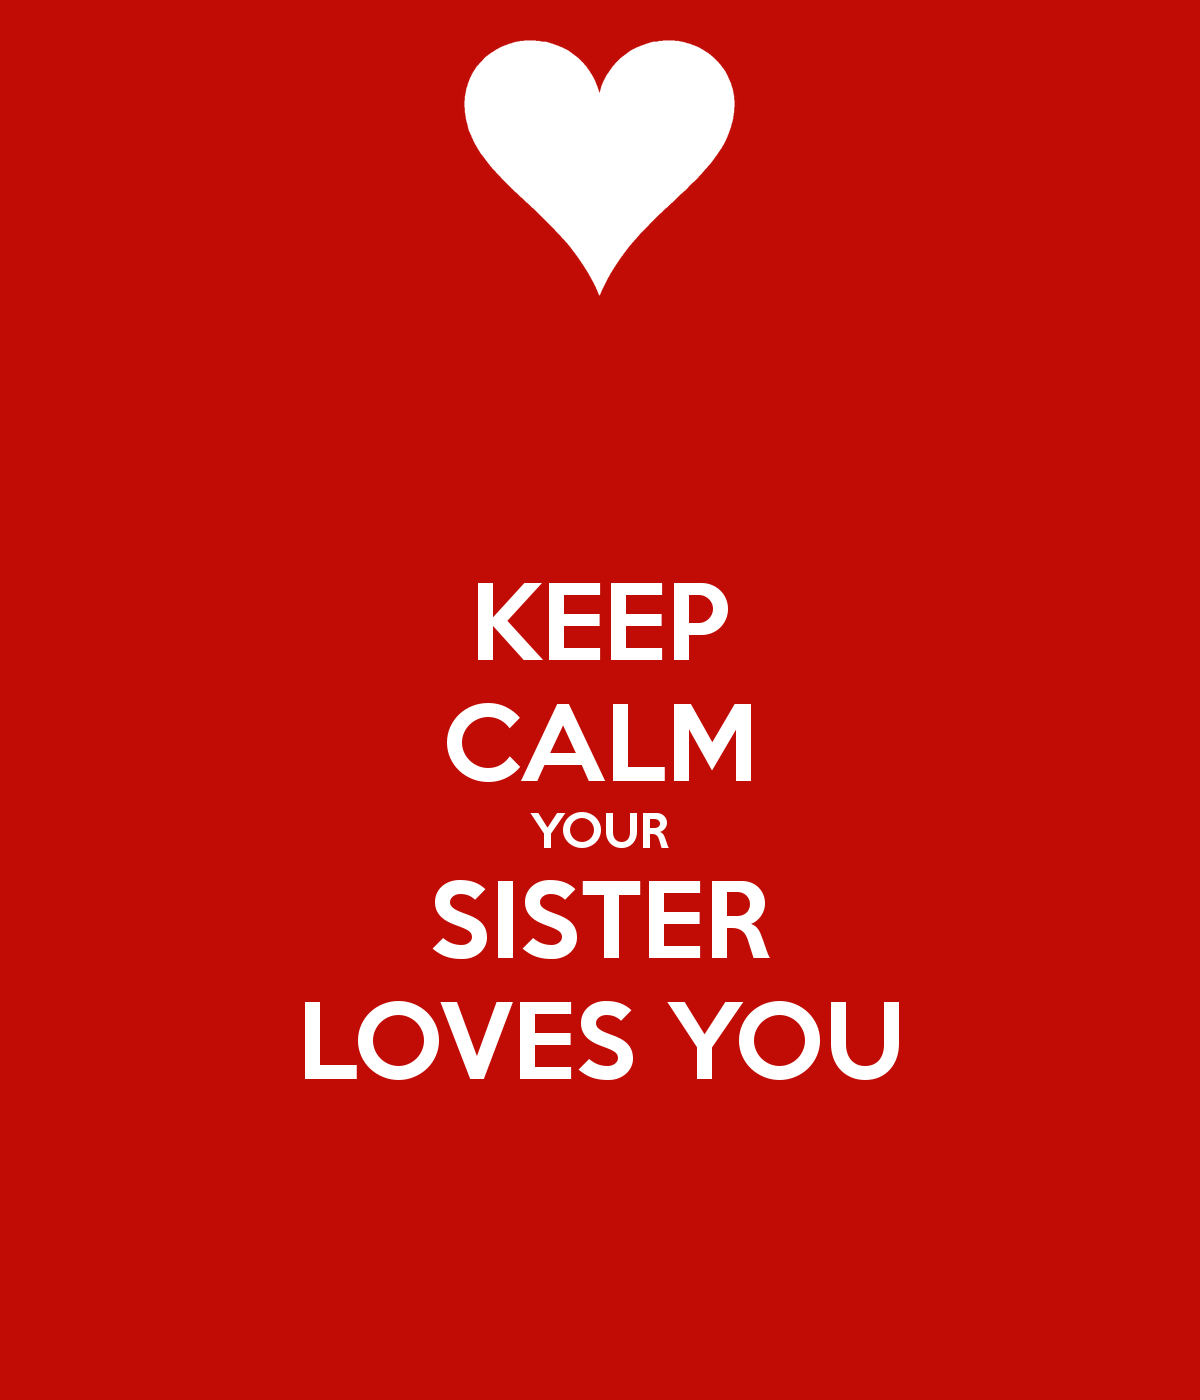 Keep Calm Your Sister Loves You Calm Quotes Sister Quotes Funny Quotes